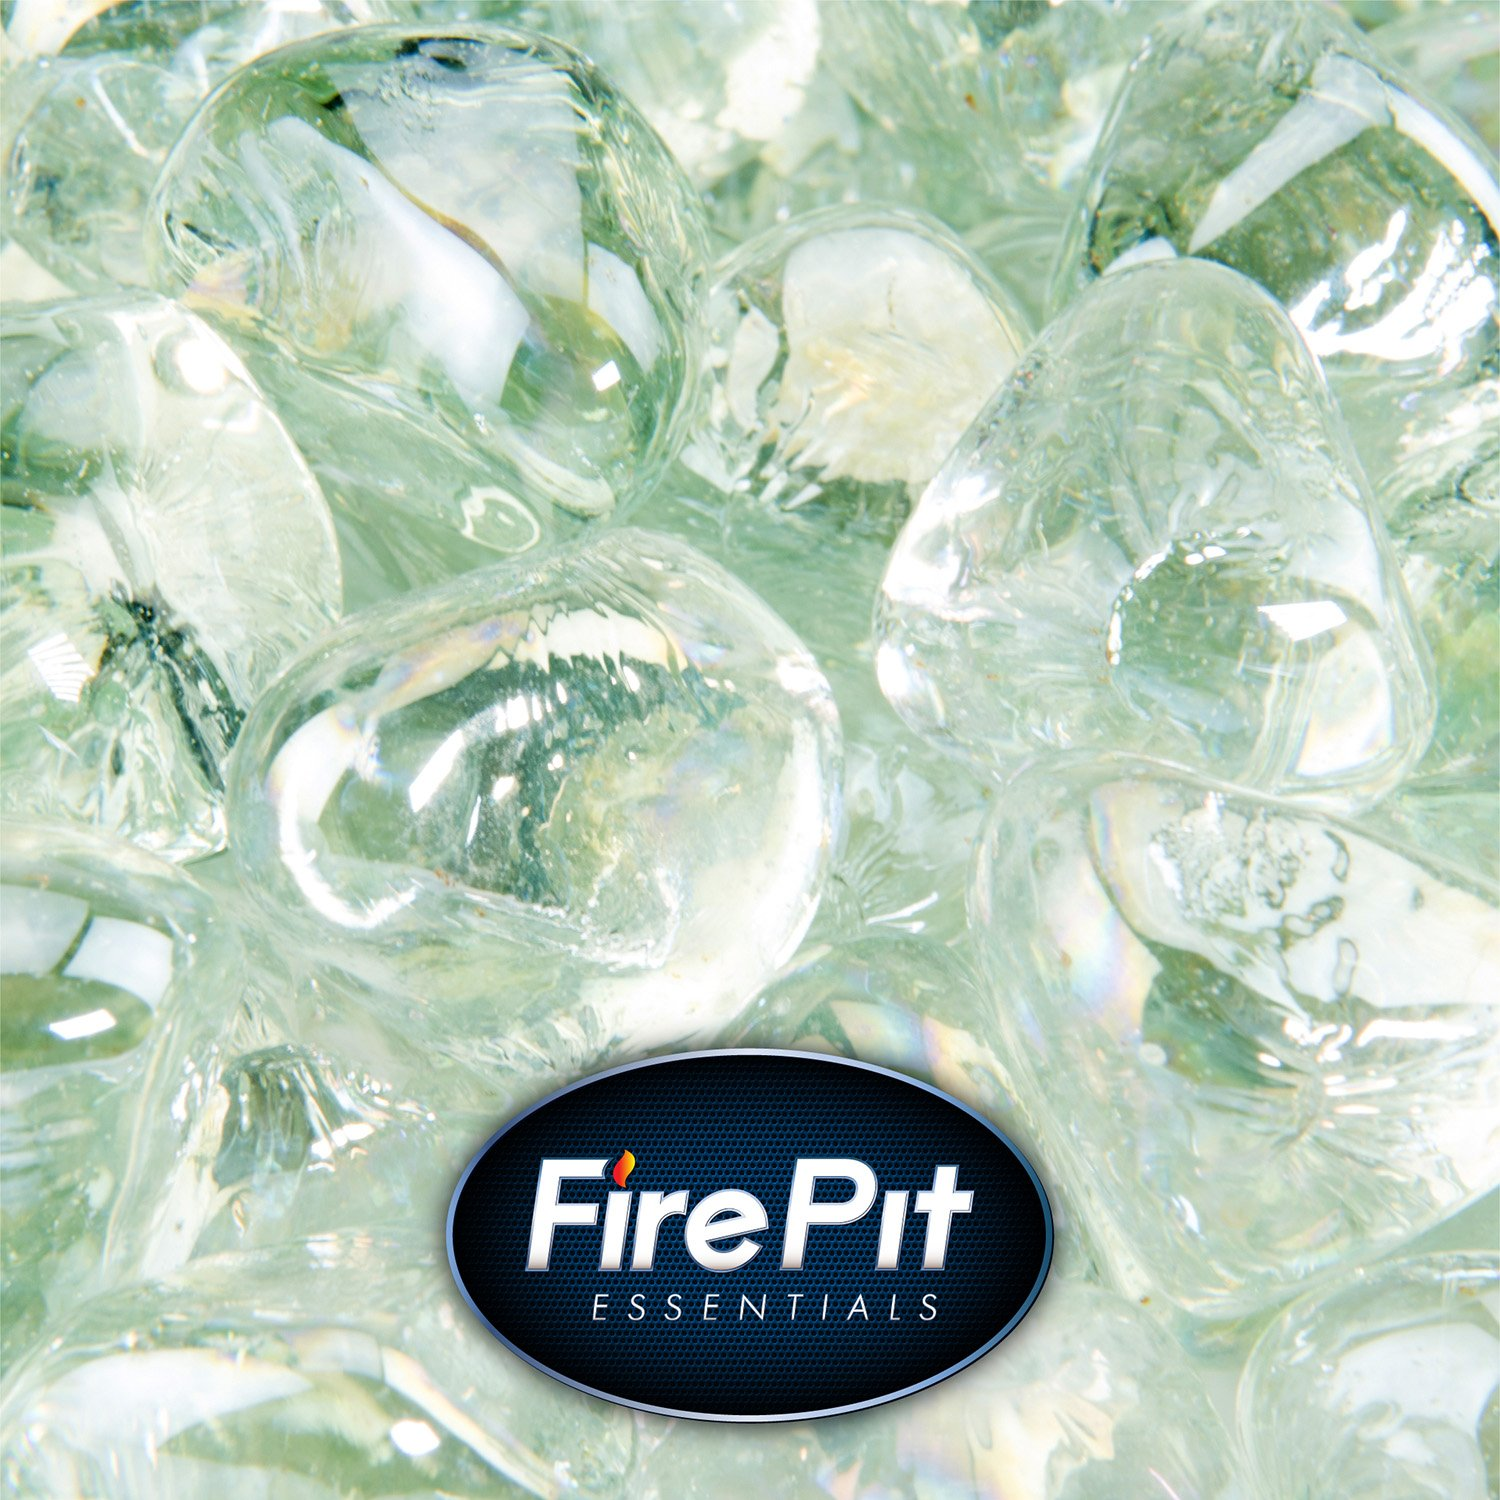 Clear Fire Glass for Indoor and Outdoor Fire Pits or Fireplaces | 10 Pounds | Arctic Ice, Fire Glass Diamonds, 1 Inch